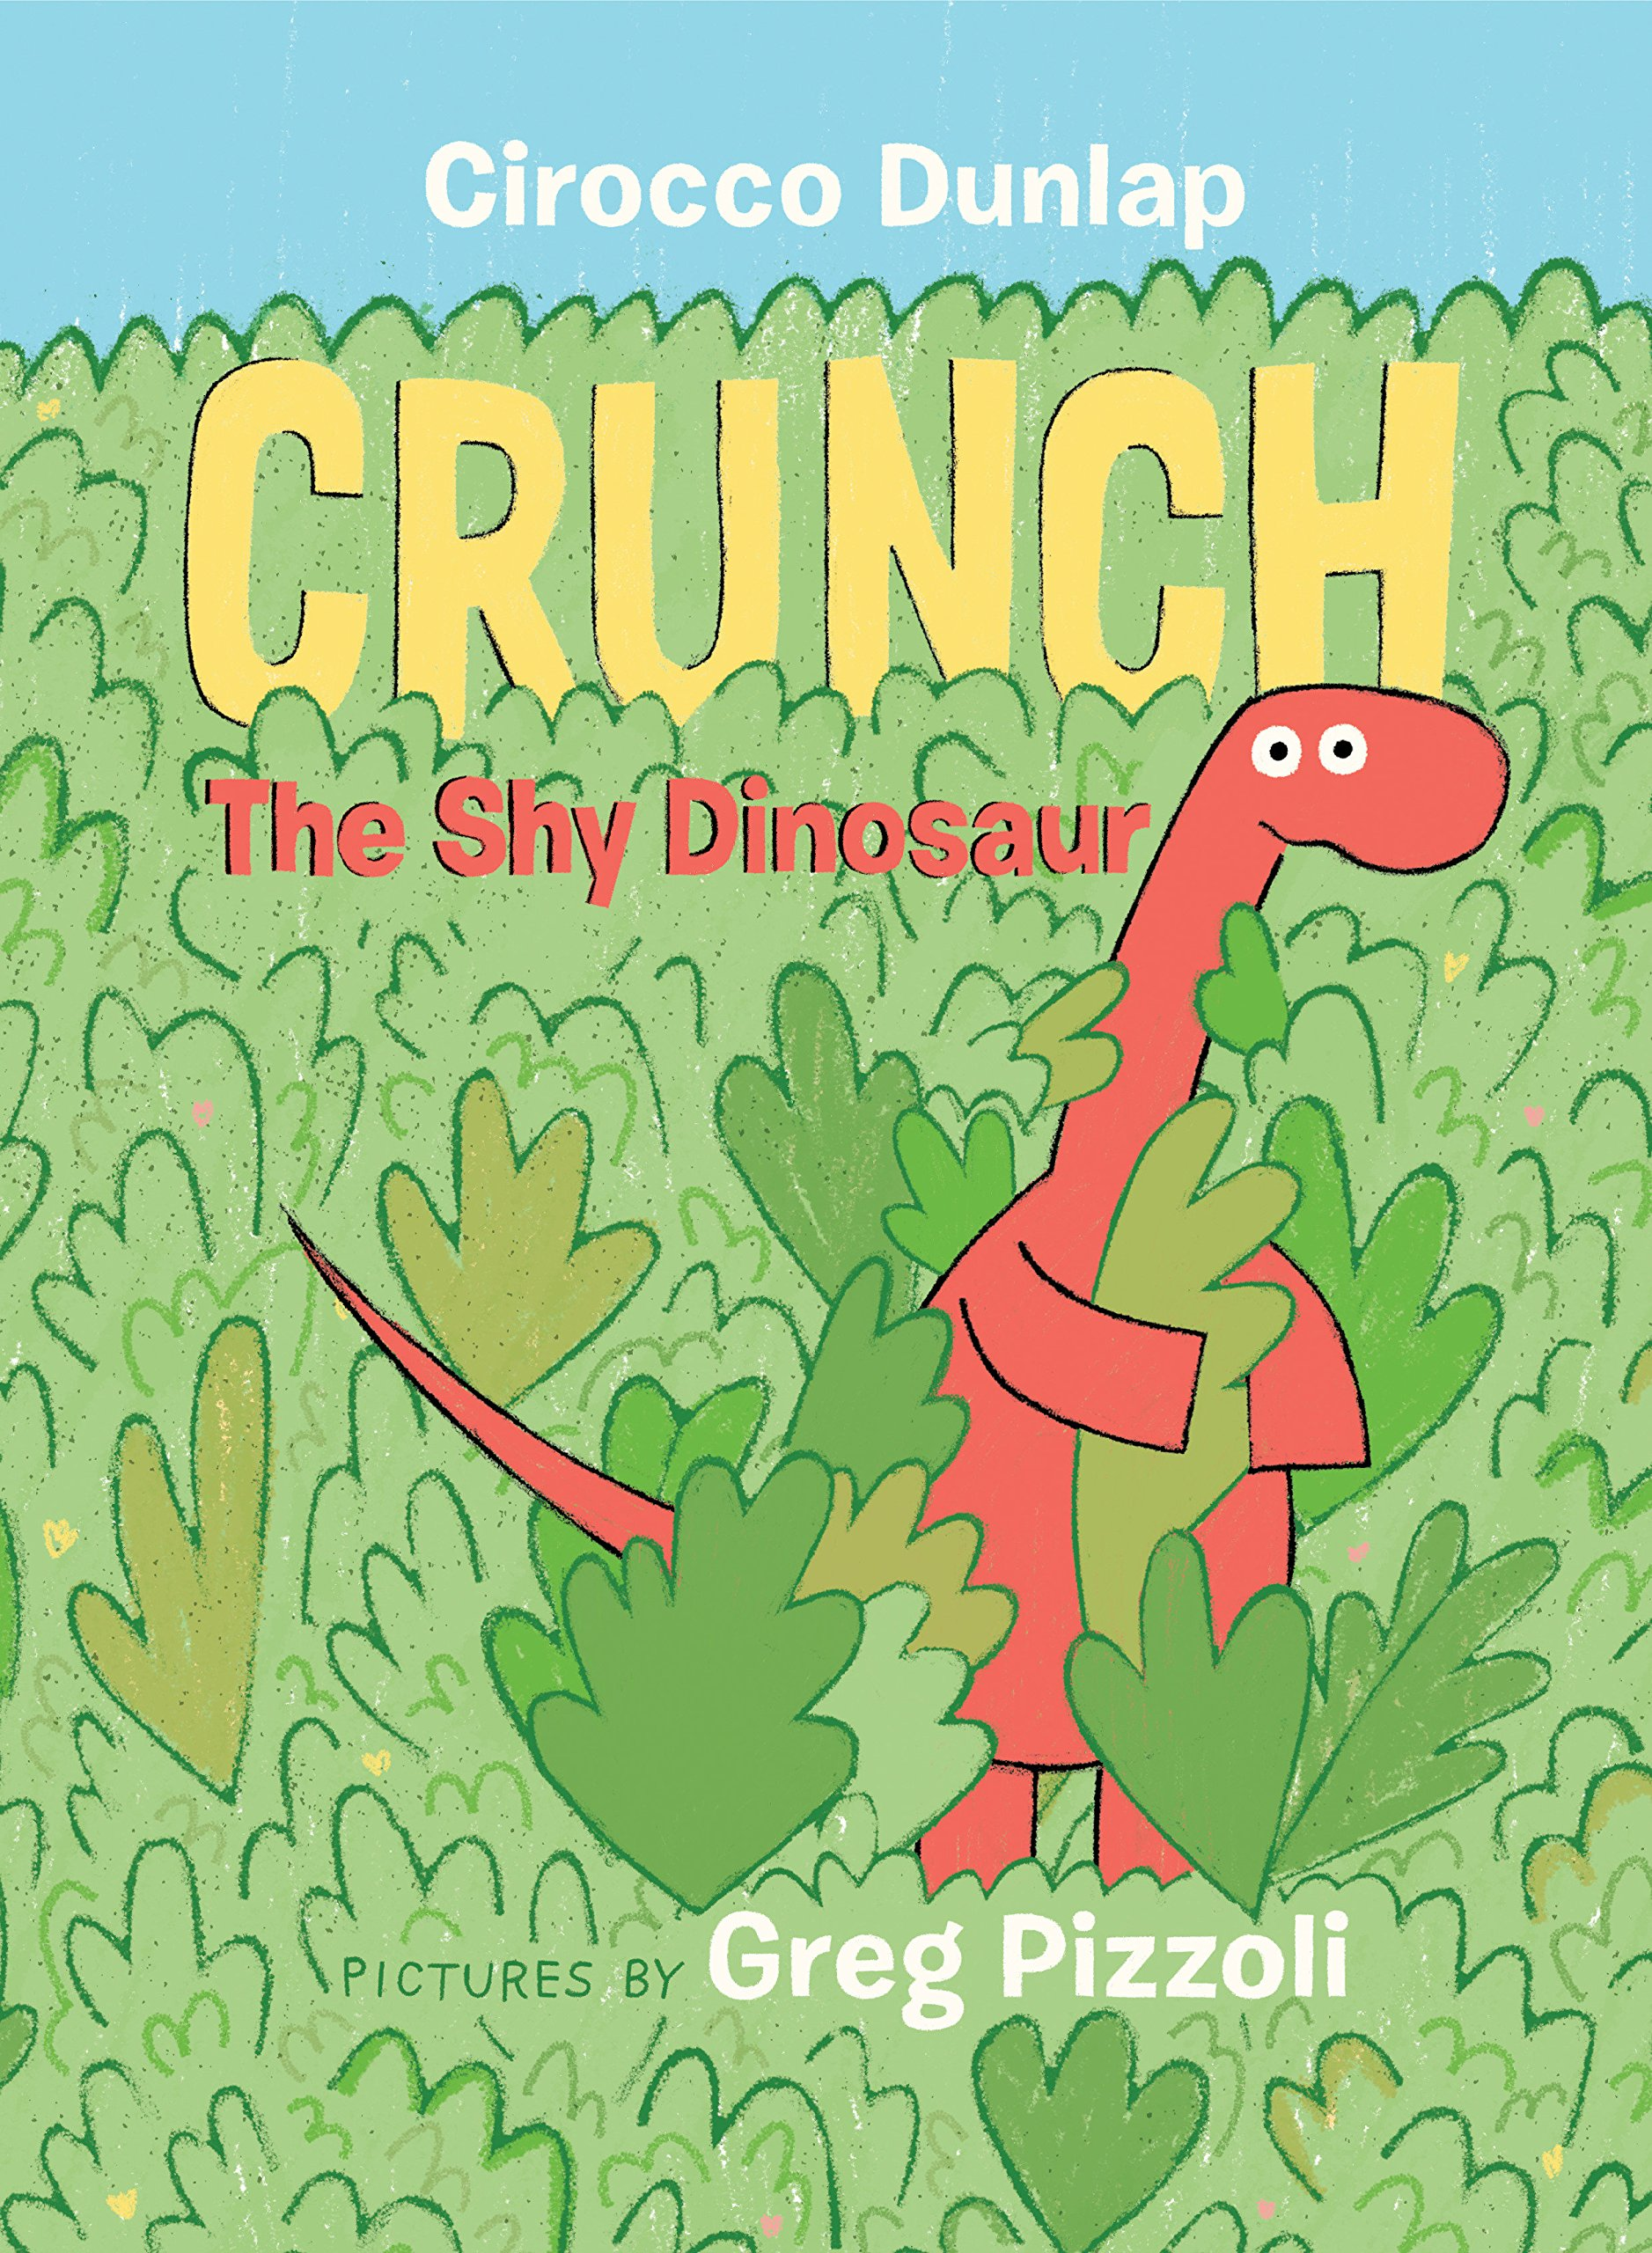 Image result for crunch shy dinosaur amazon